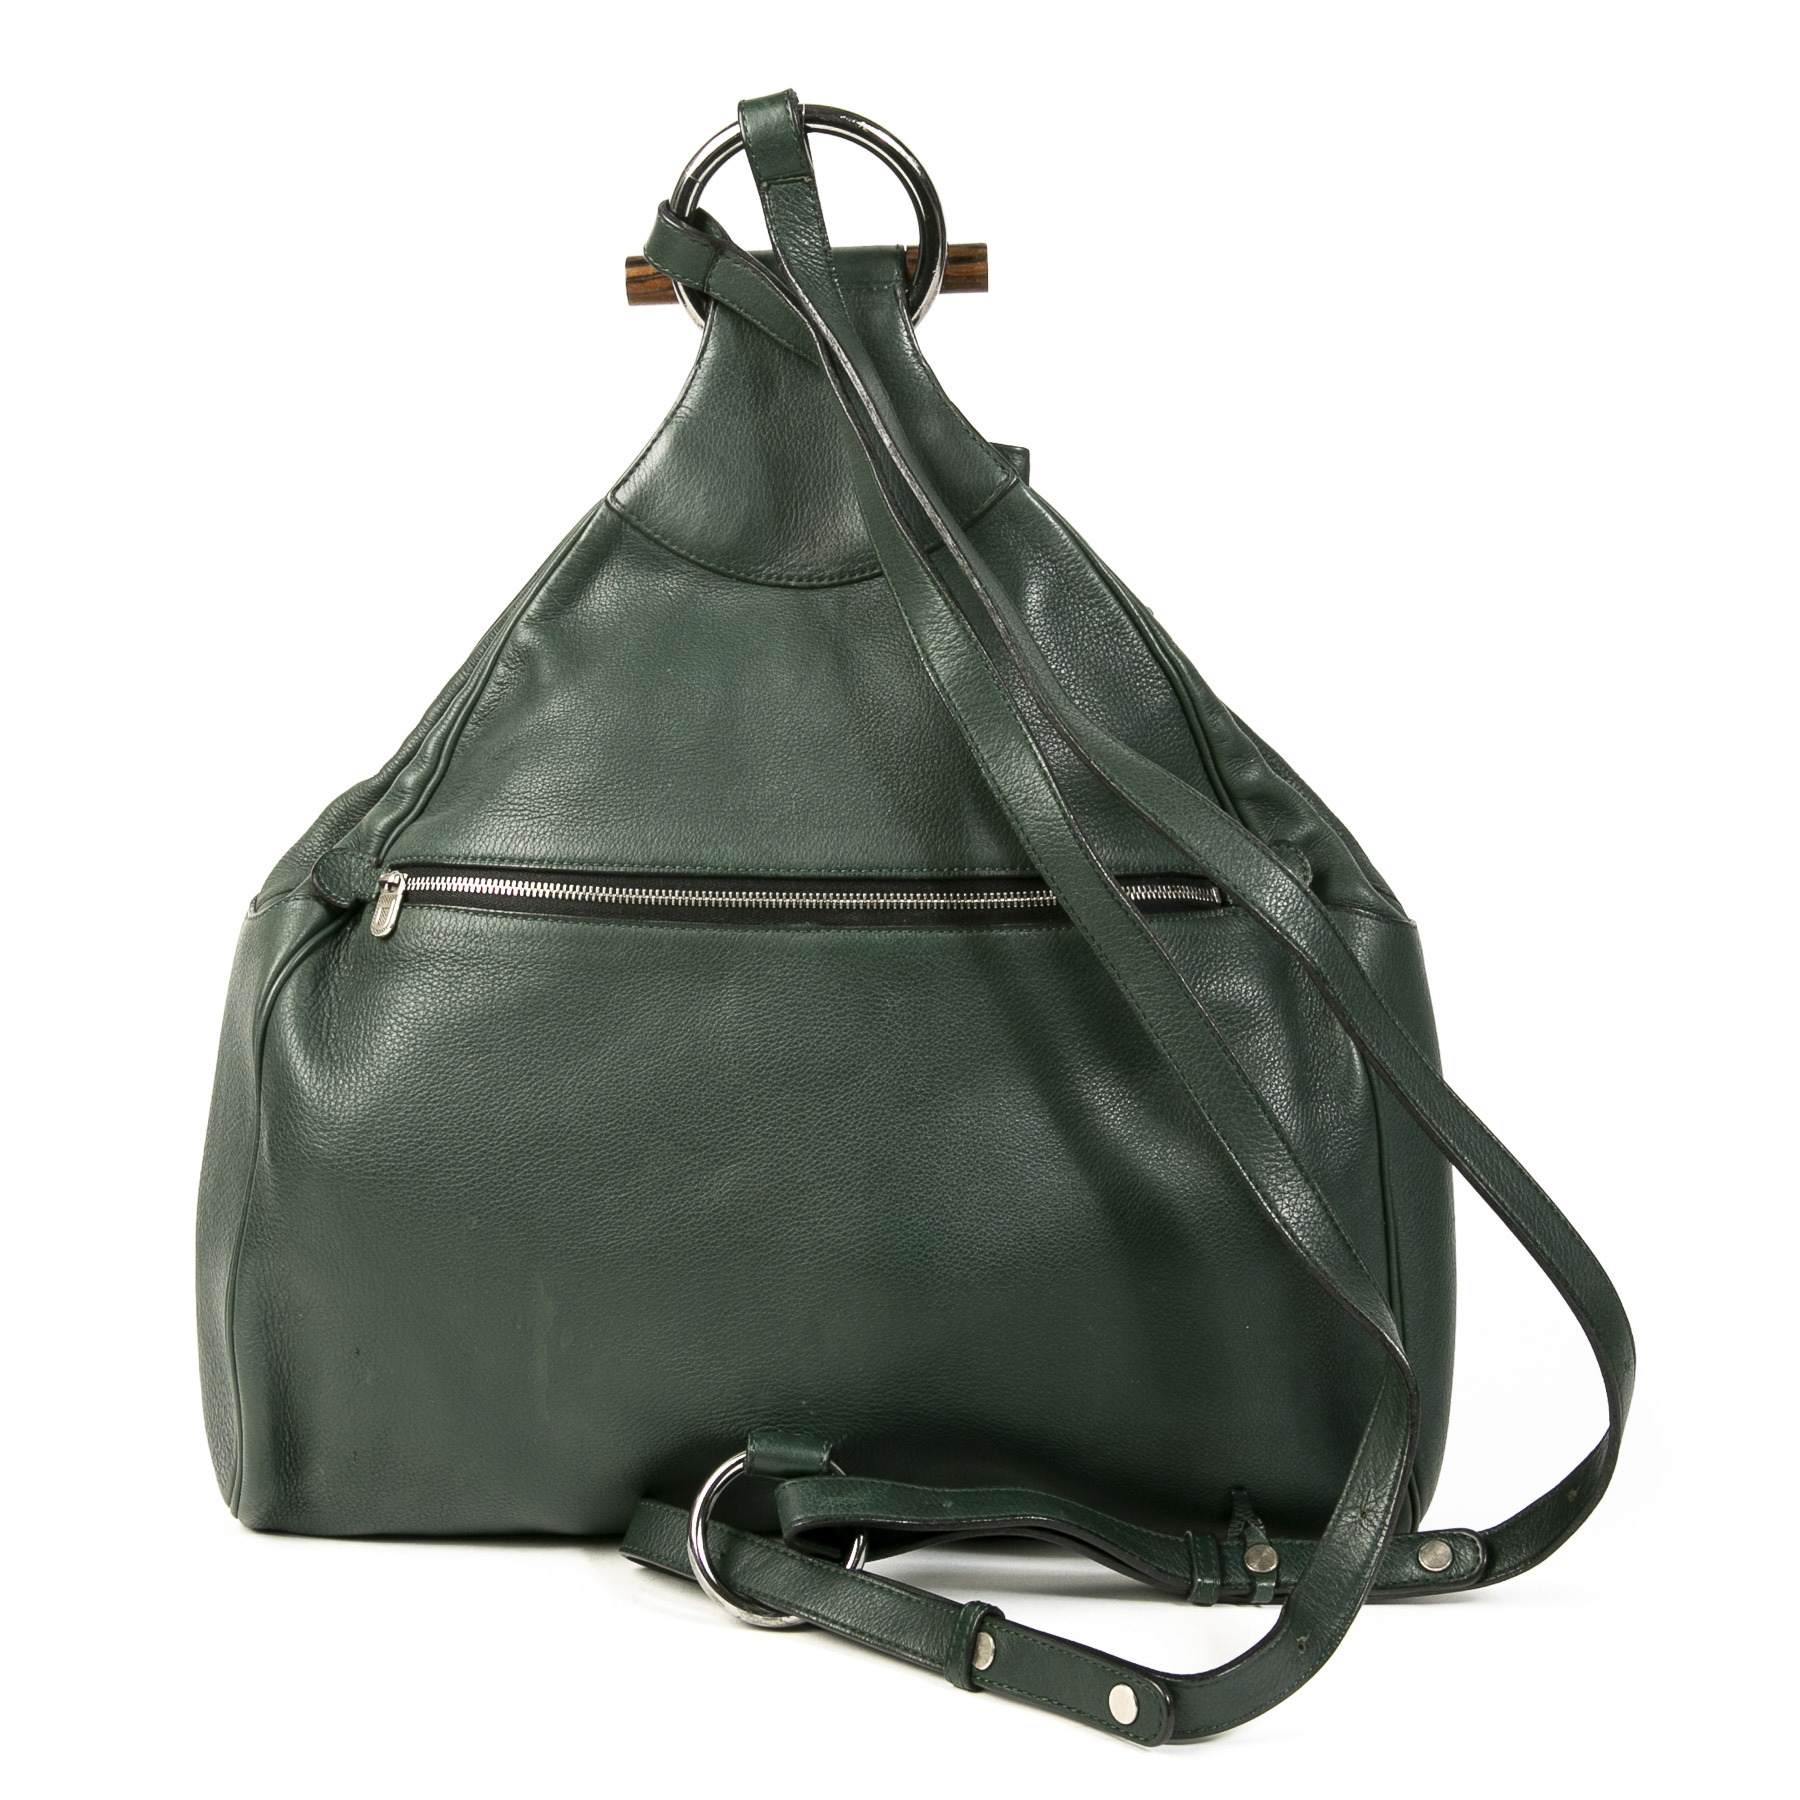 Authentic second-hand vintage Delvaux Green Almond Backpack buy online webshop LabelLOV